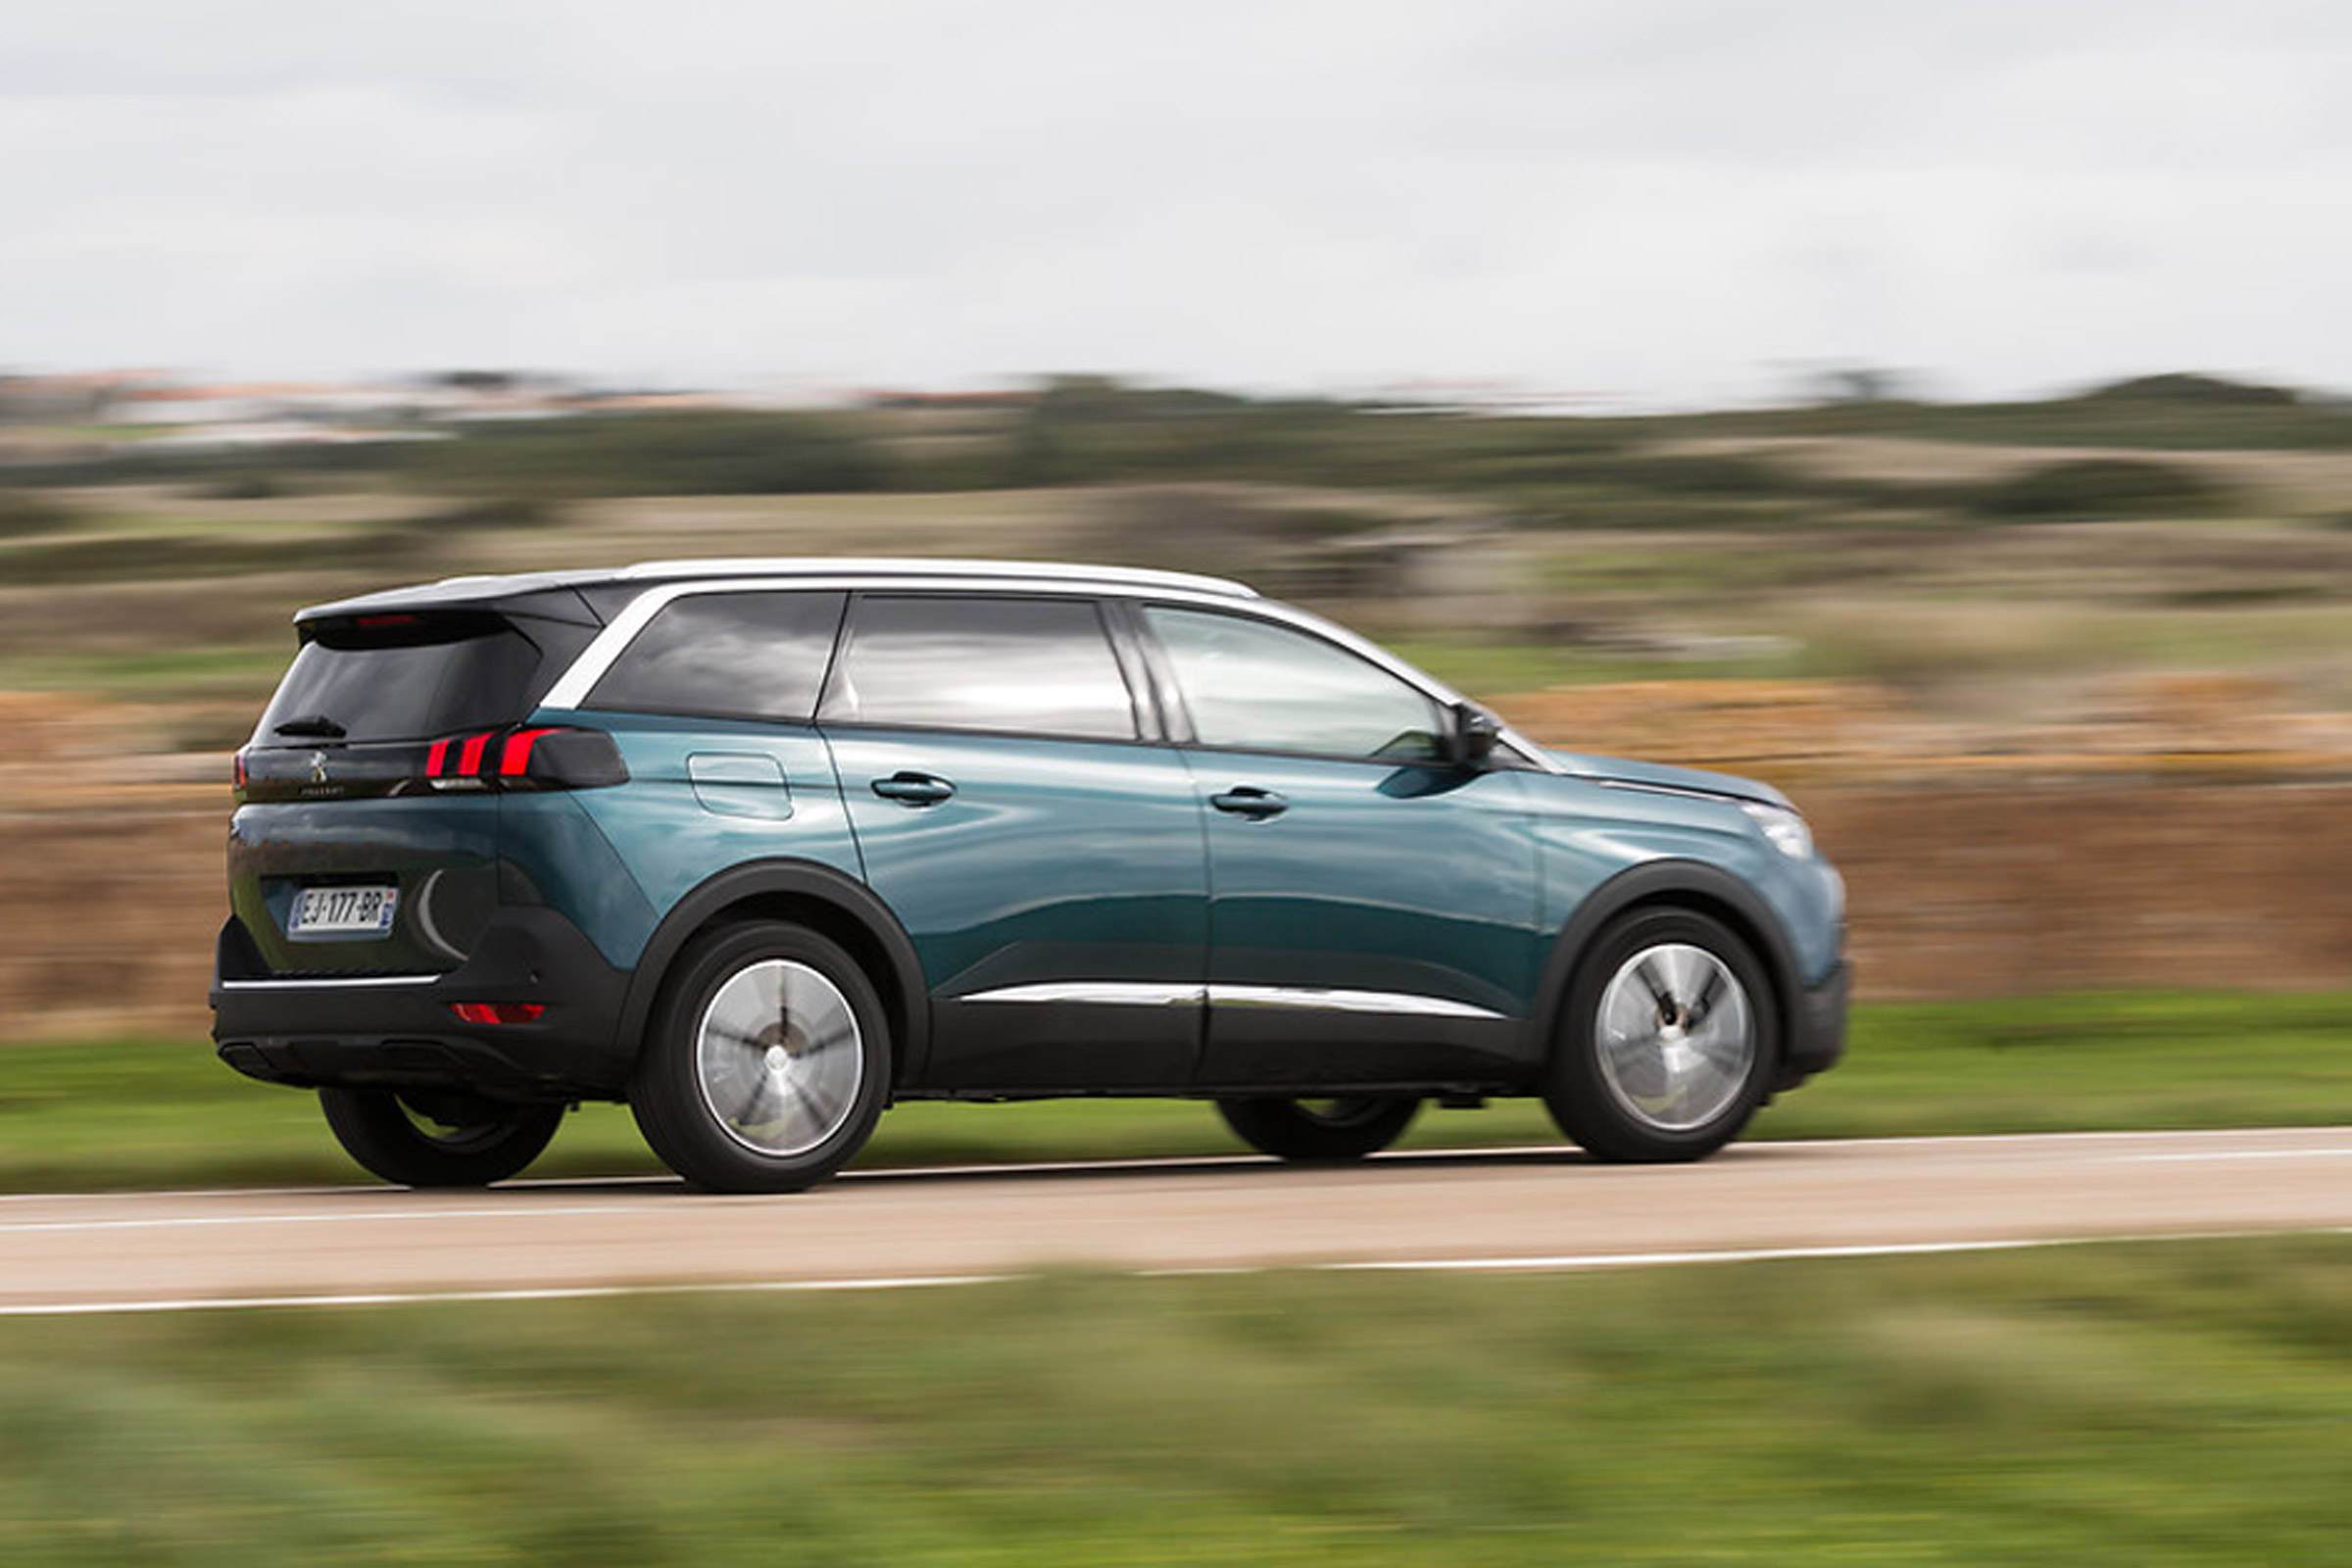 2017 Peugeot 5008 SUV Test Drive Side And Rear View (View 4 of 18)